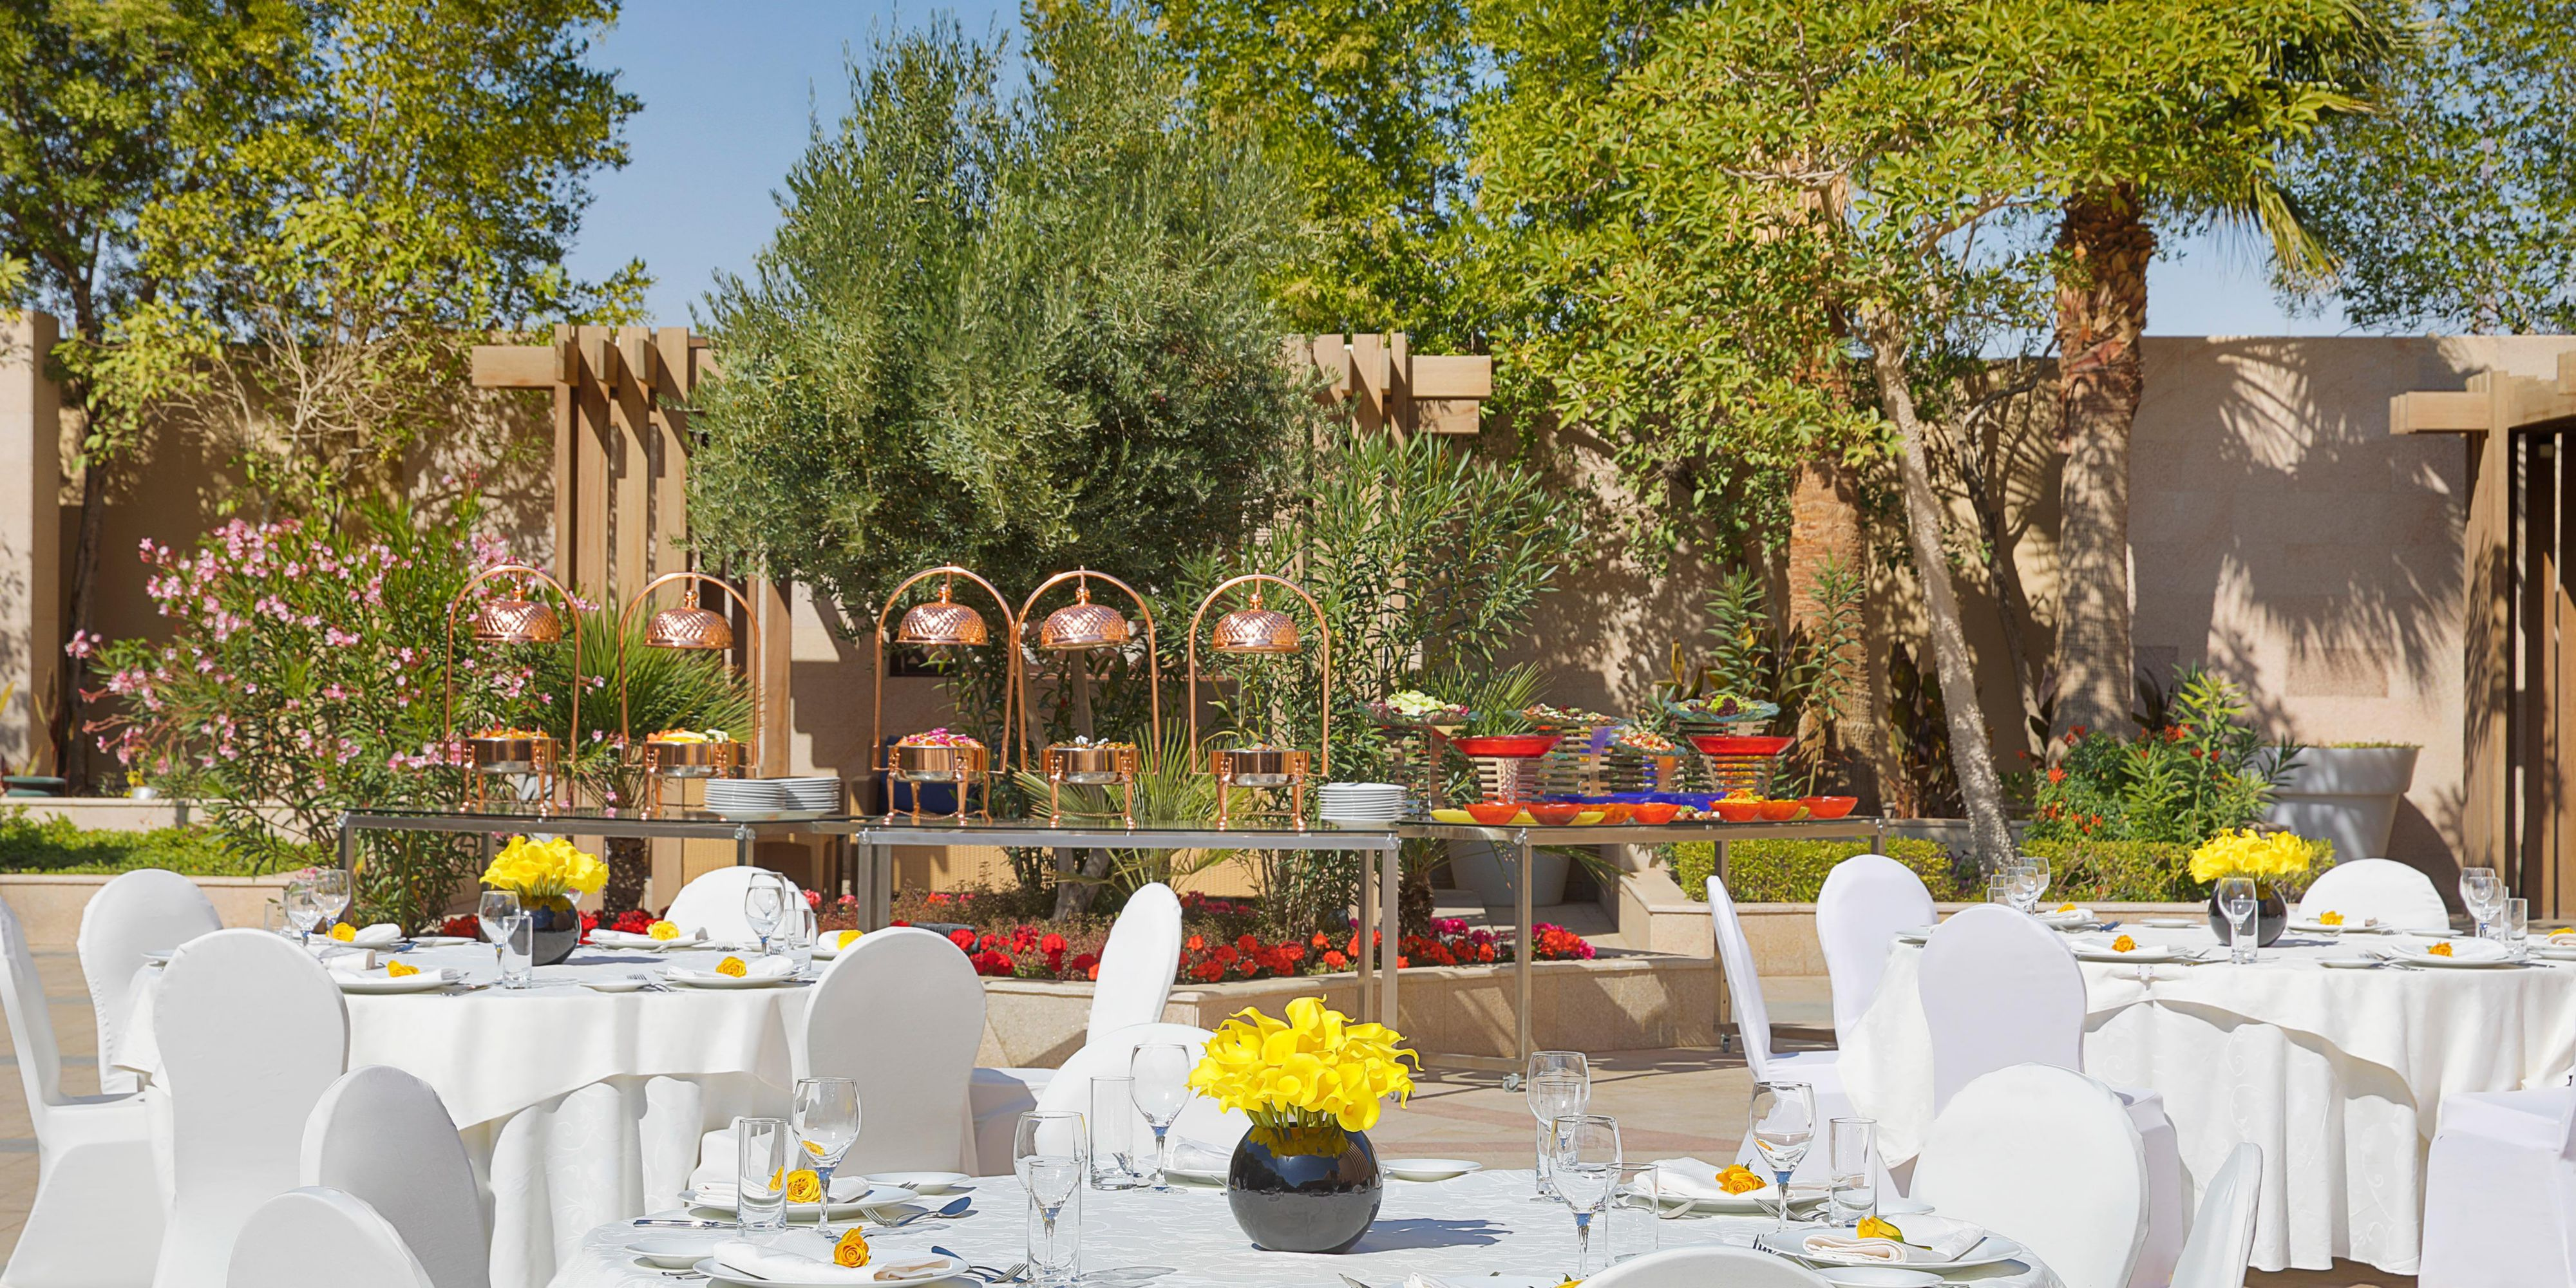 Outside Catering Setup Whether for wedding, private party or else